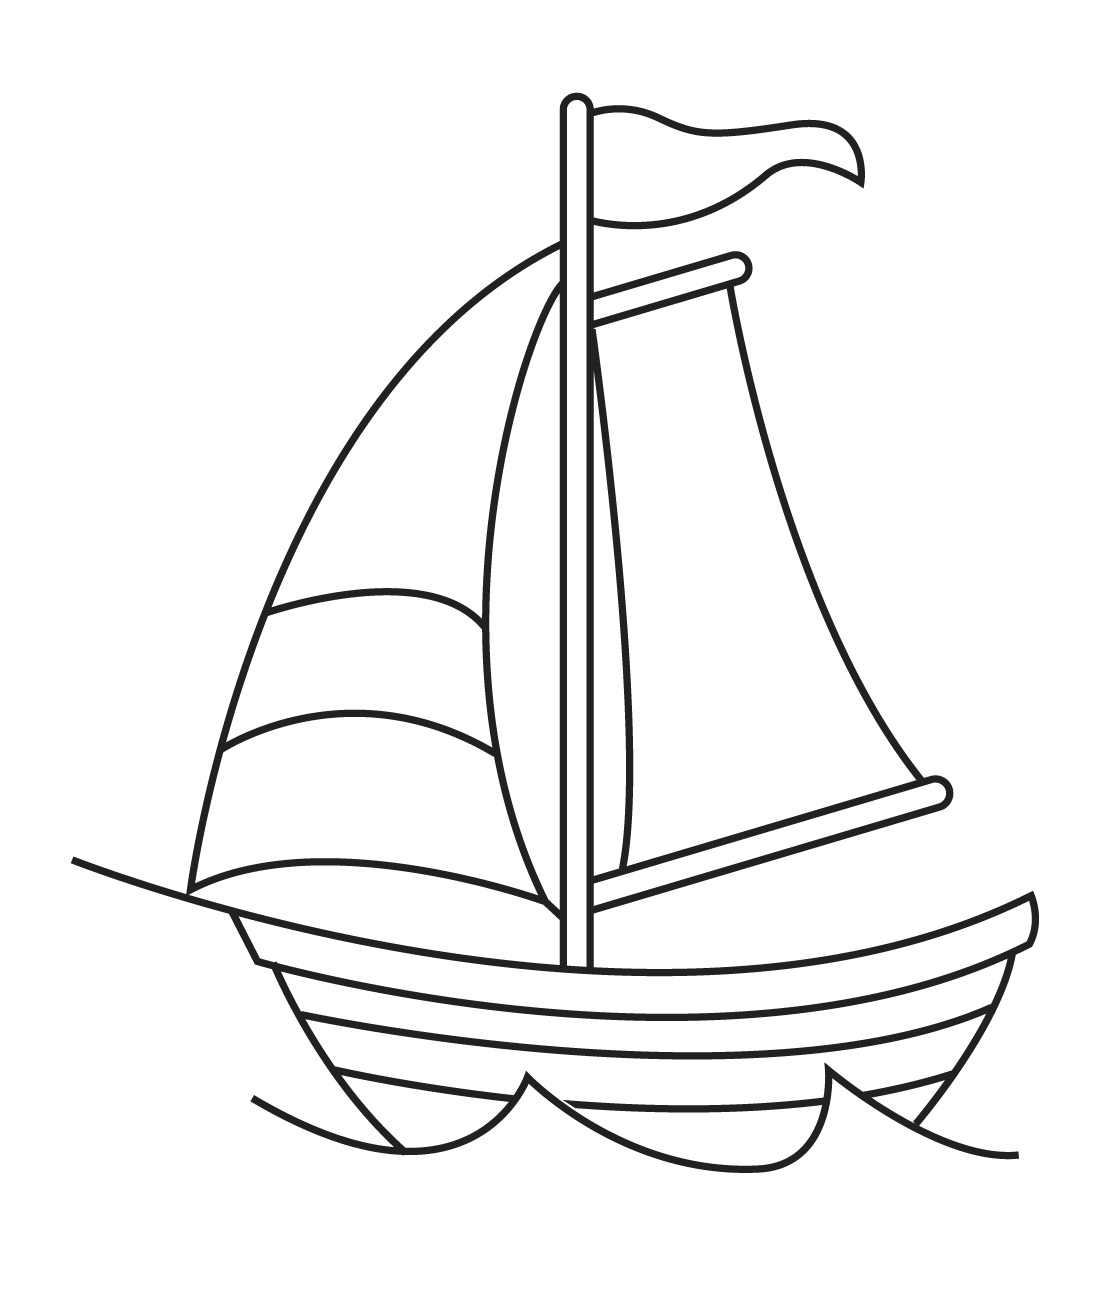 coloring ship drawing ship 9 with images ship drawing coloring pages ship coloring drawing